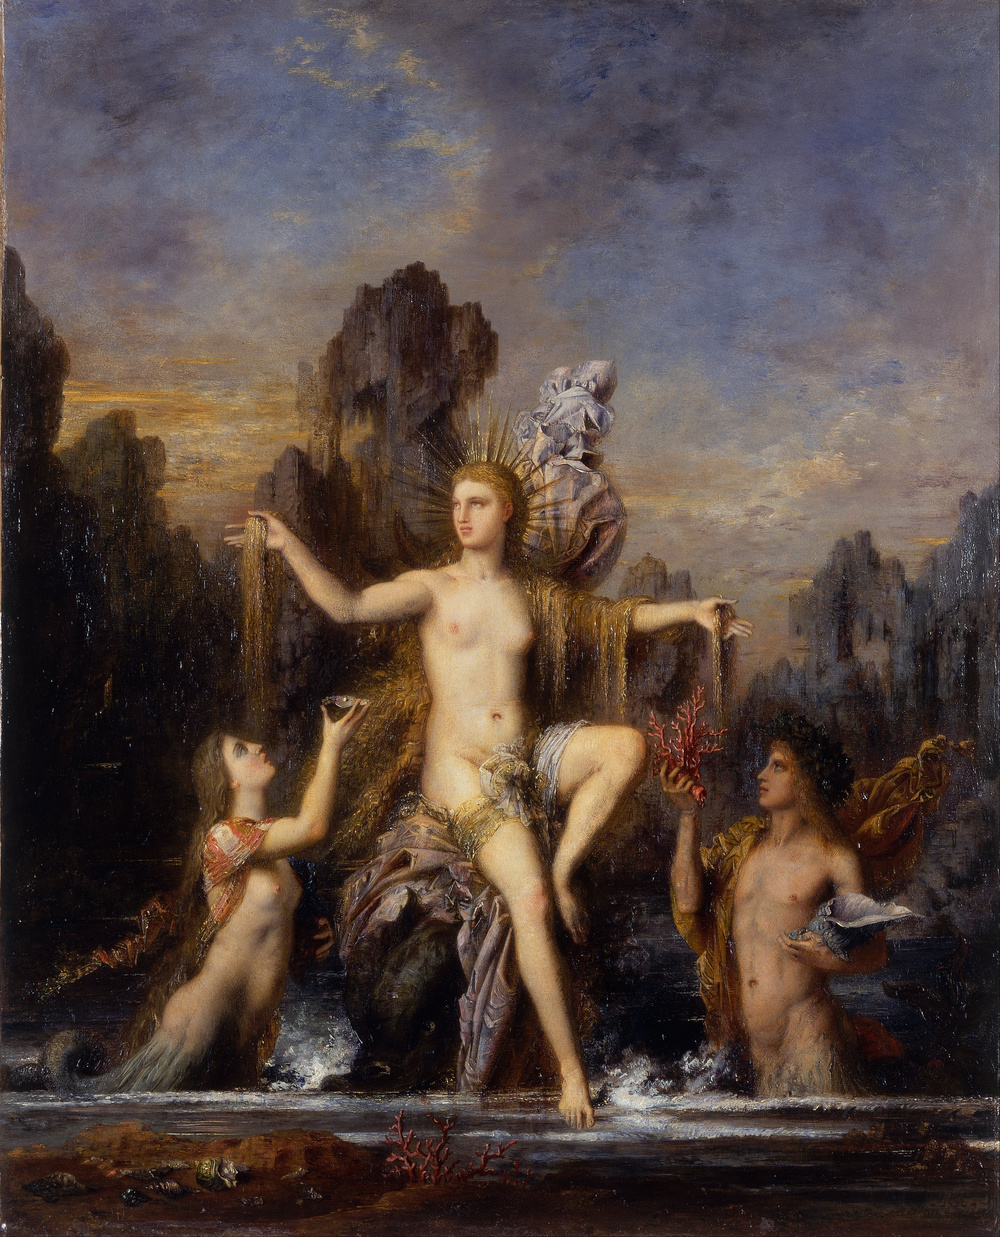 Gustave Moreau, Venus Rising from the Sea, 1866, Israel Museum.